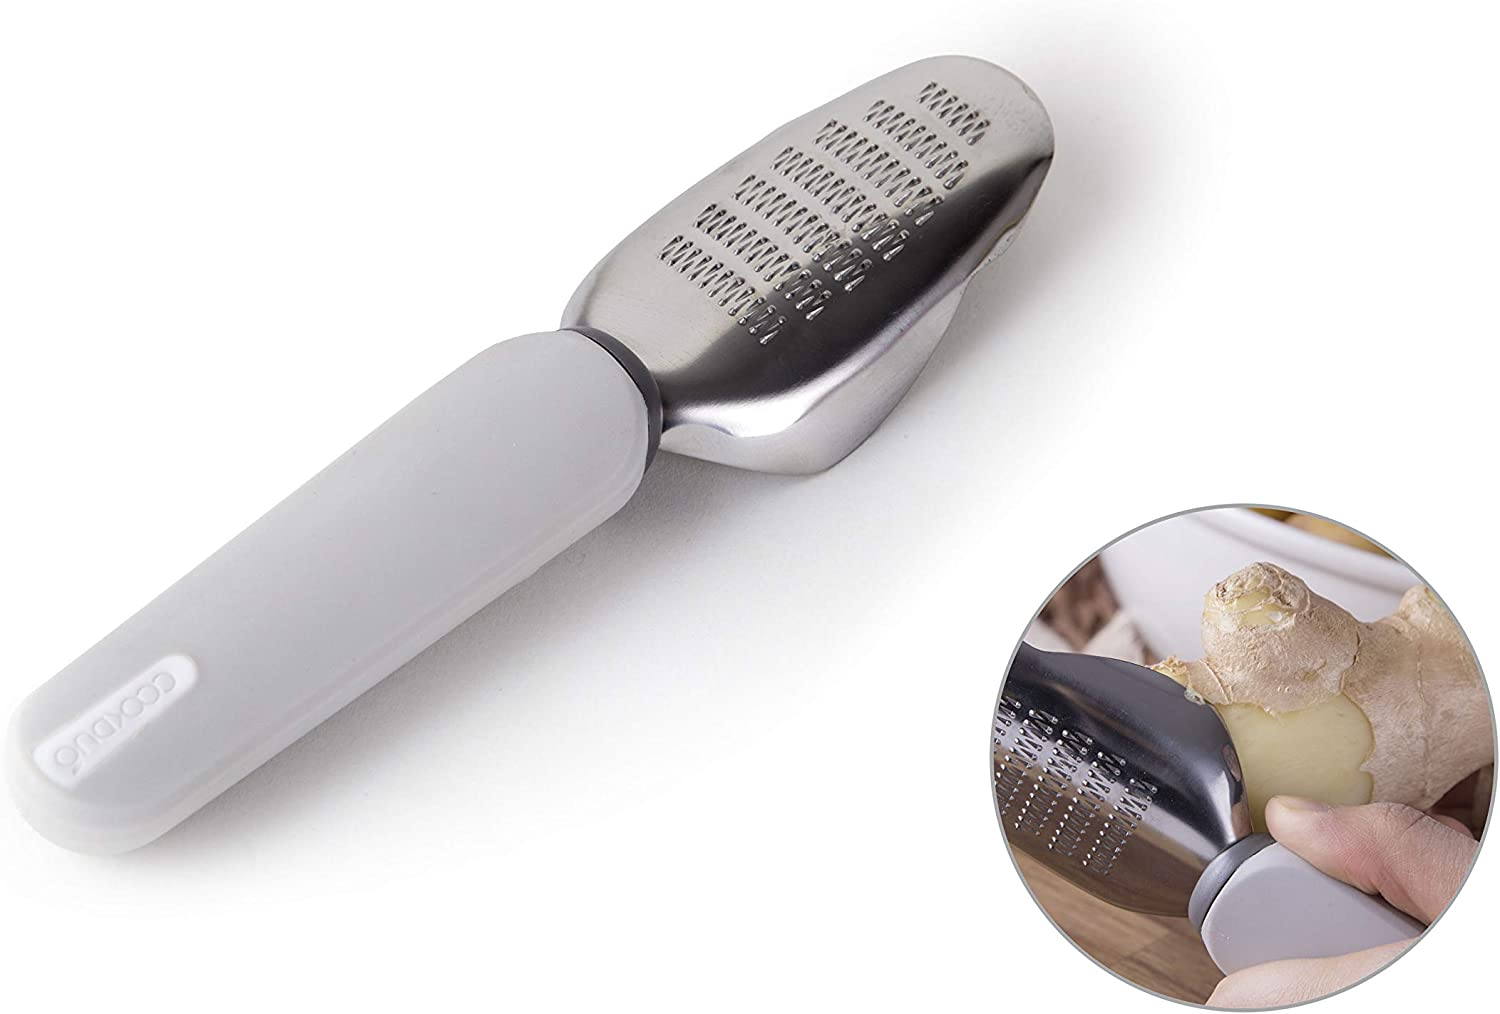 COOKDUO Peel & Grate - Ginger peeler with grater (grey)